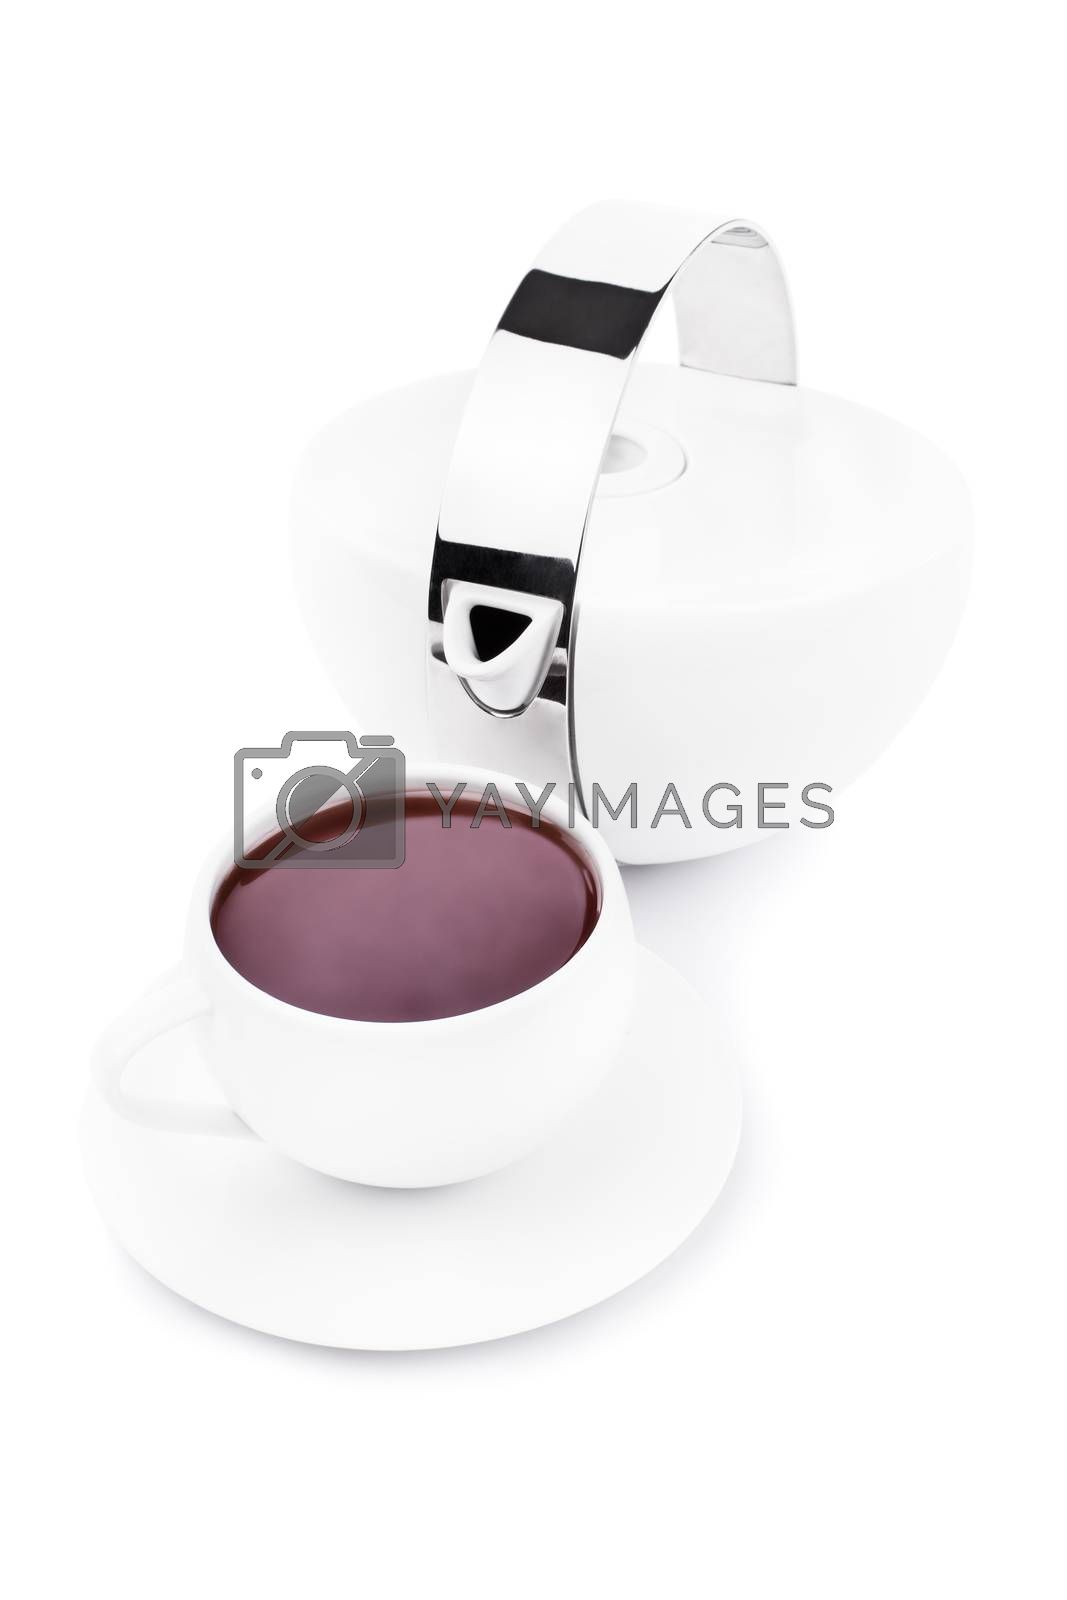 Tea cup filled with red colored tea and tea pot, isolated on white background.